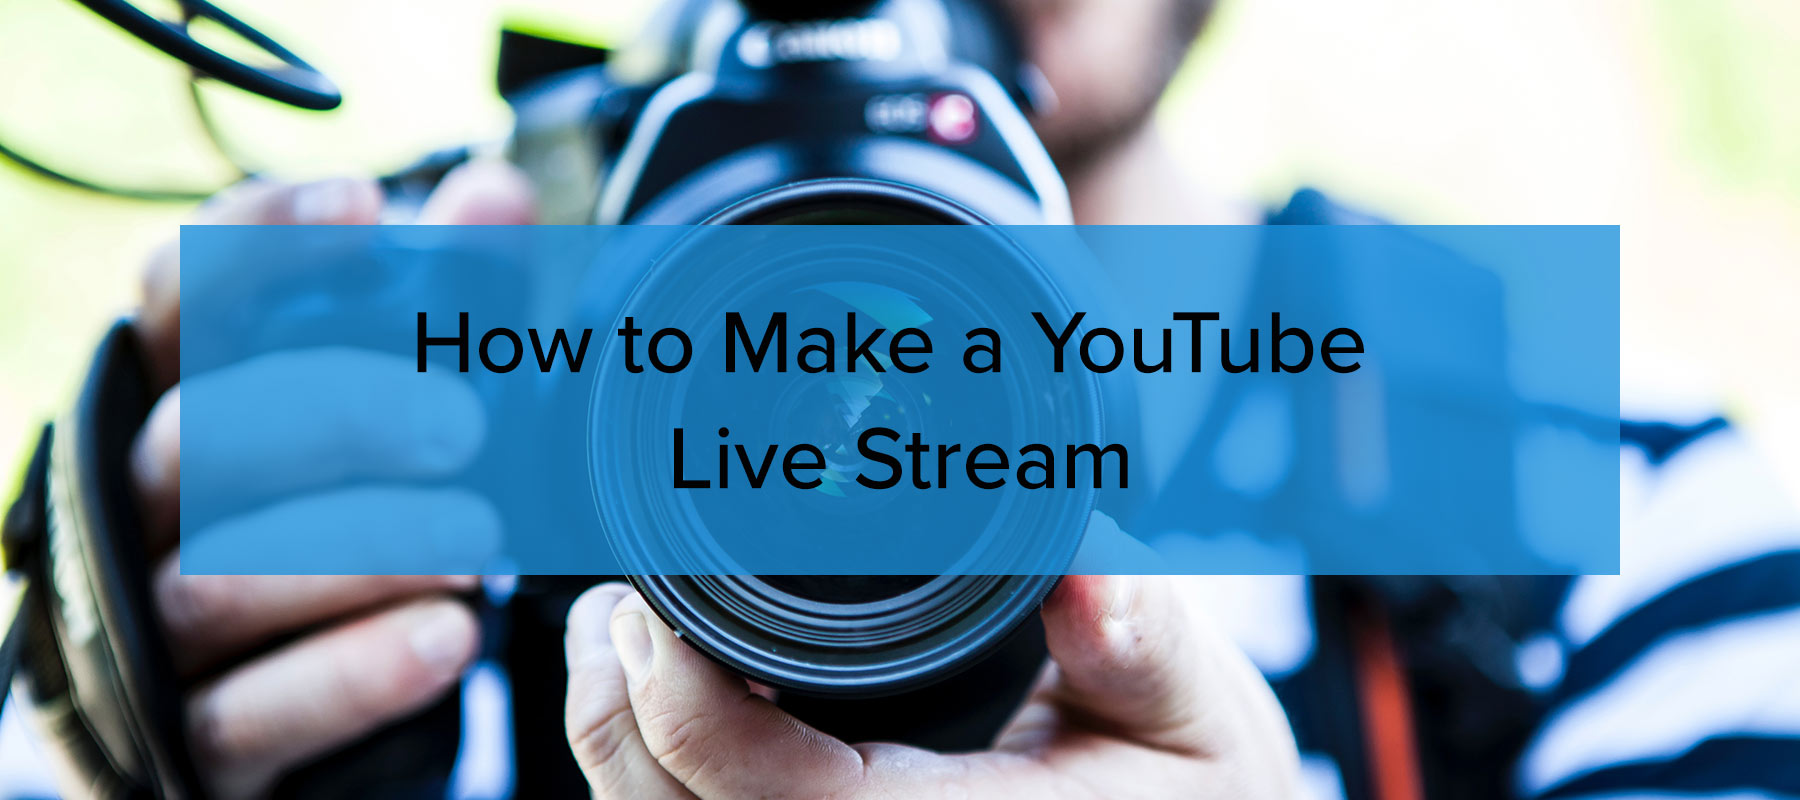 How to Make a YouTube Live Stream